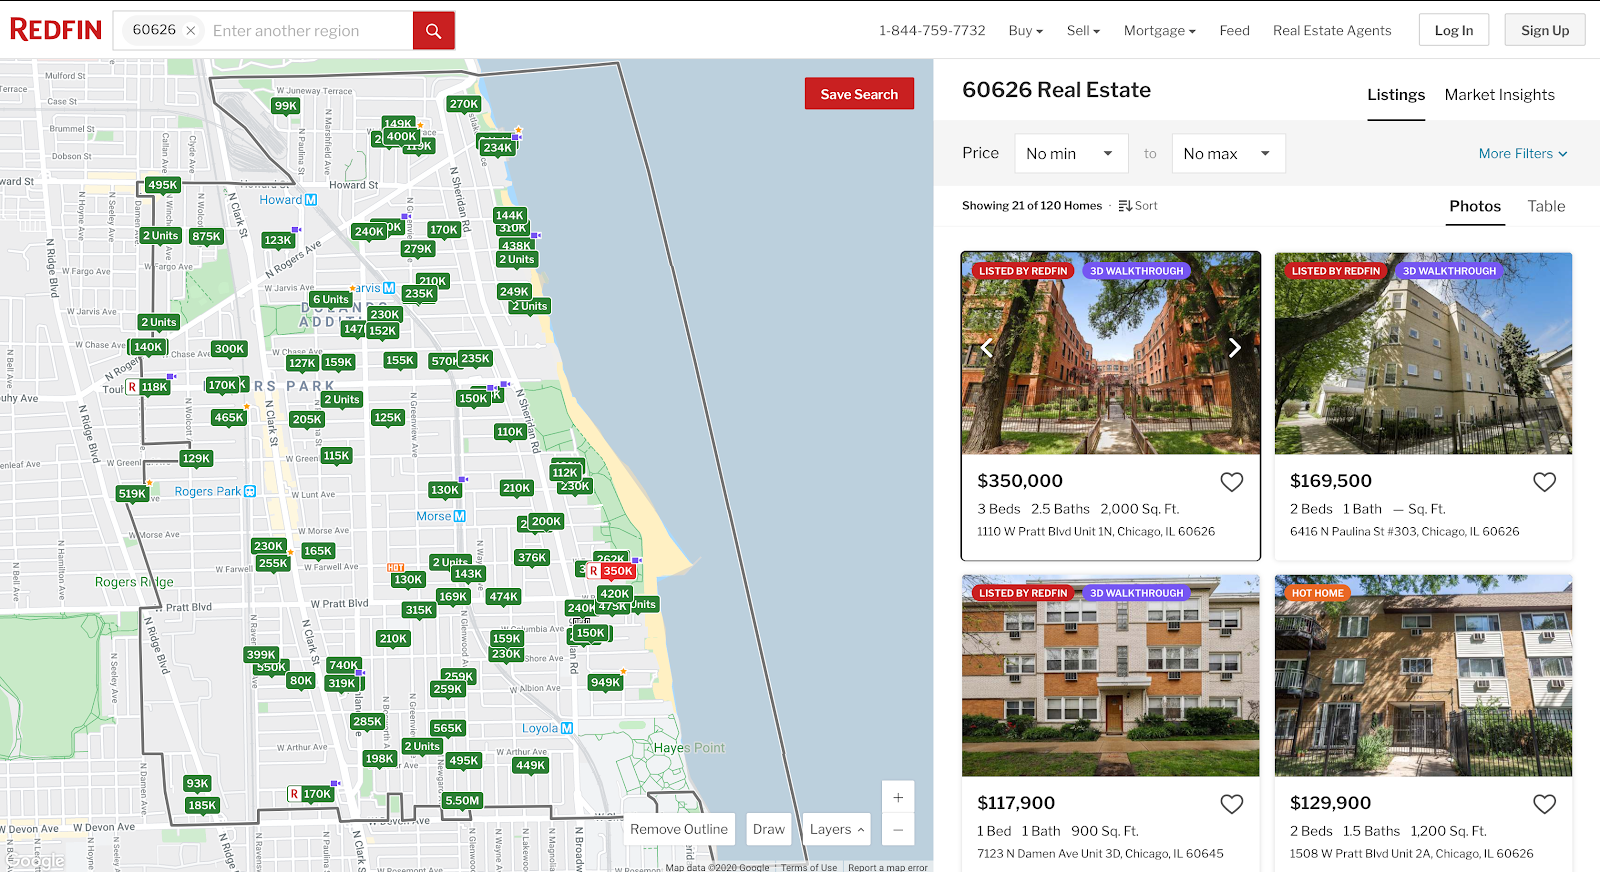 Screenshot of Redfin's real-estate listings